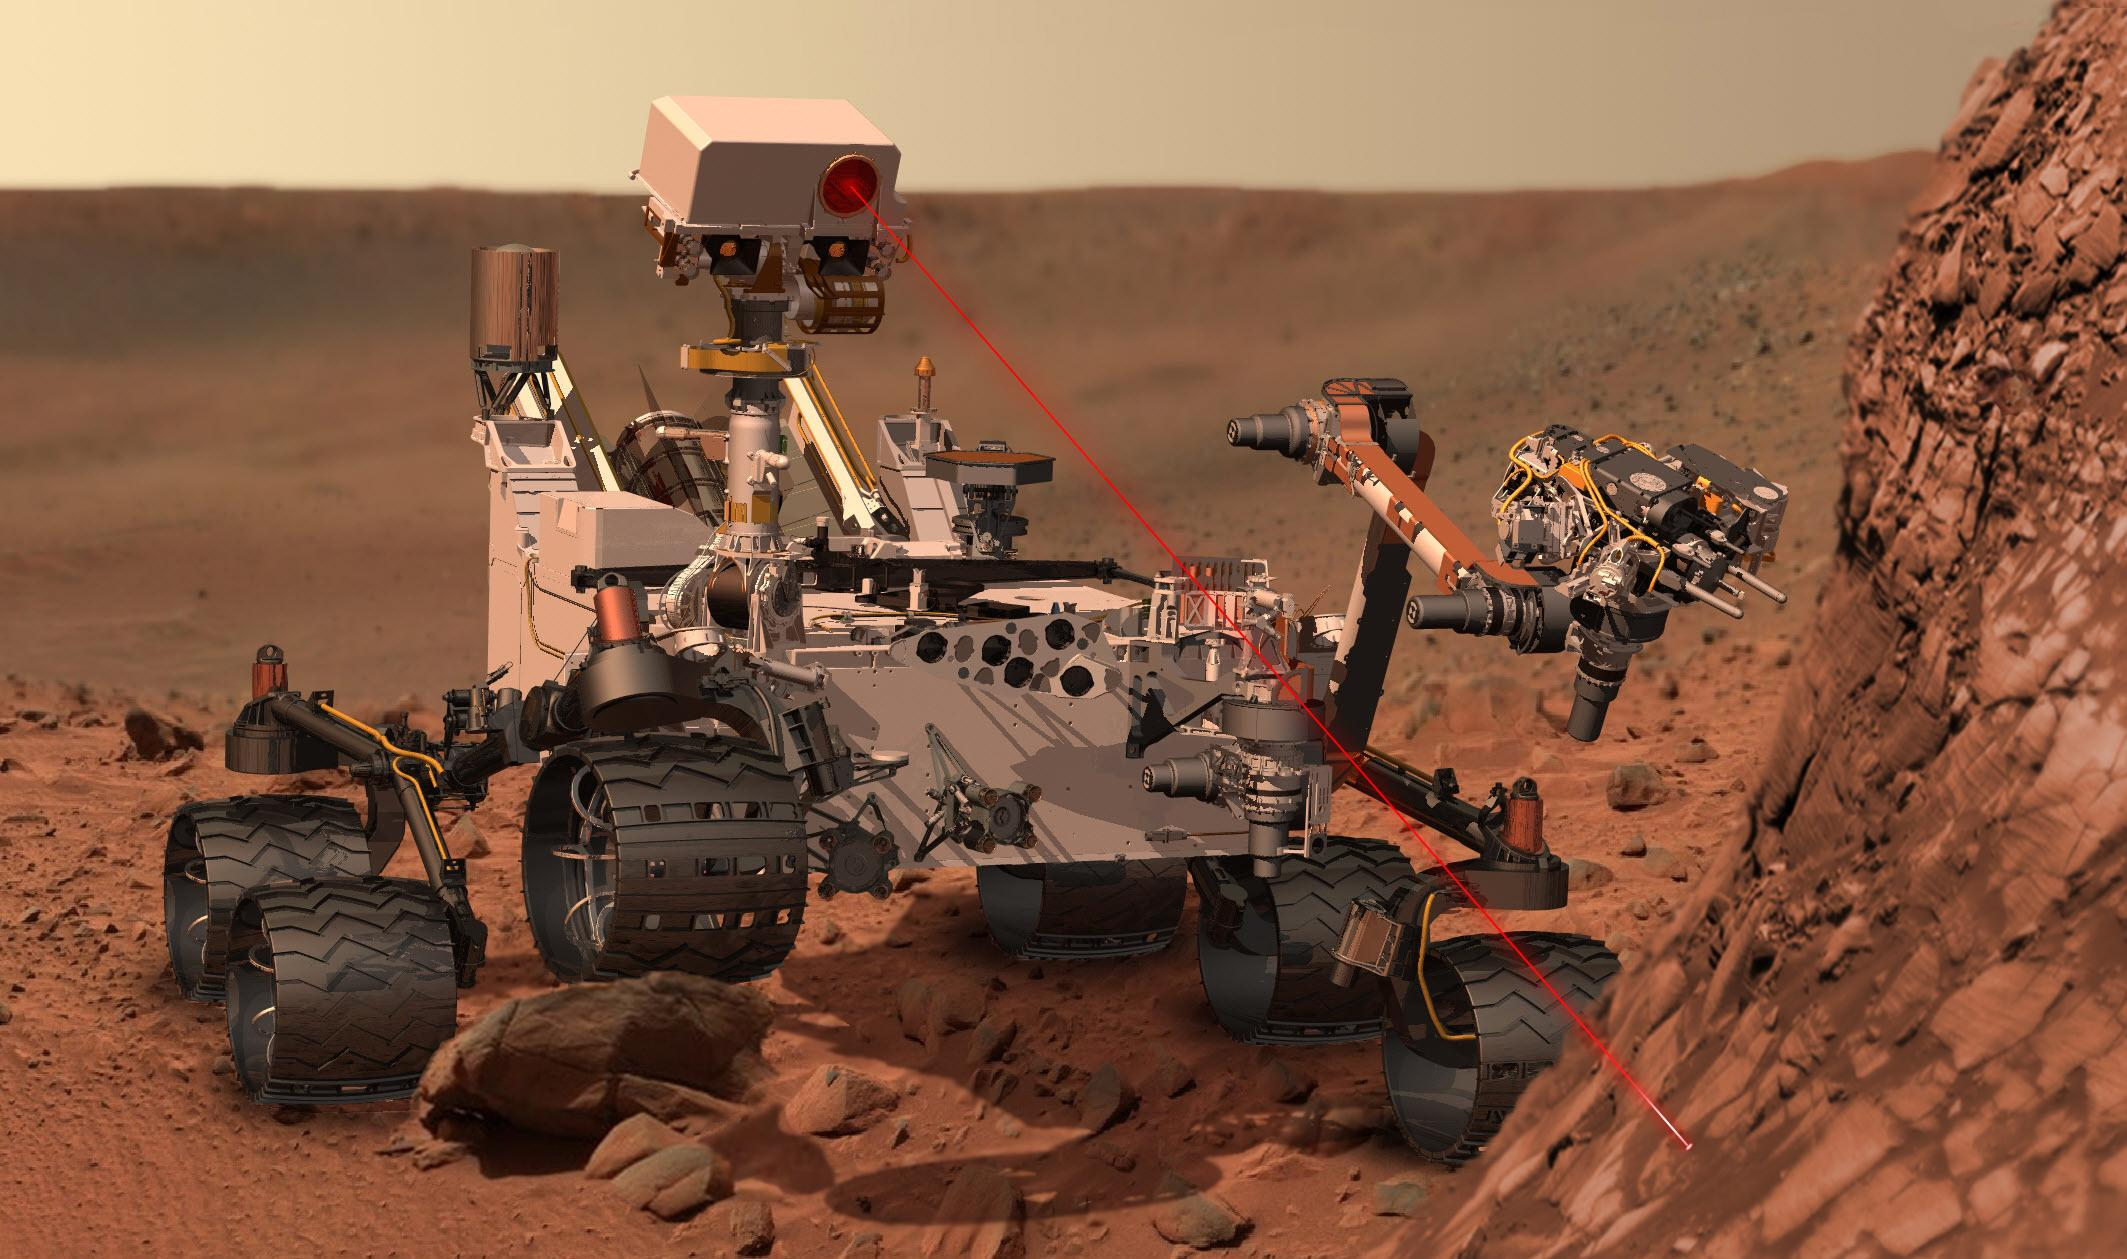 nasa mars exploration rover mission - photo #14